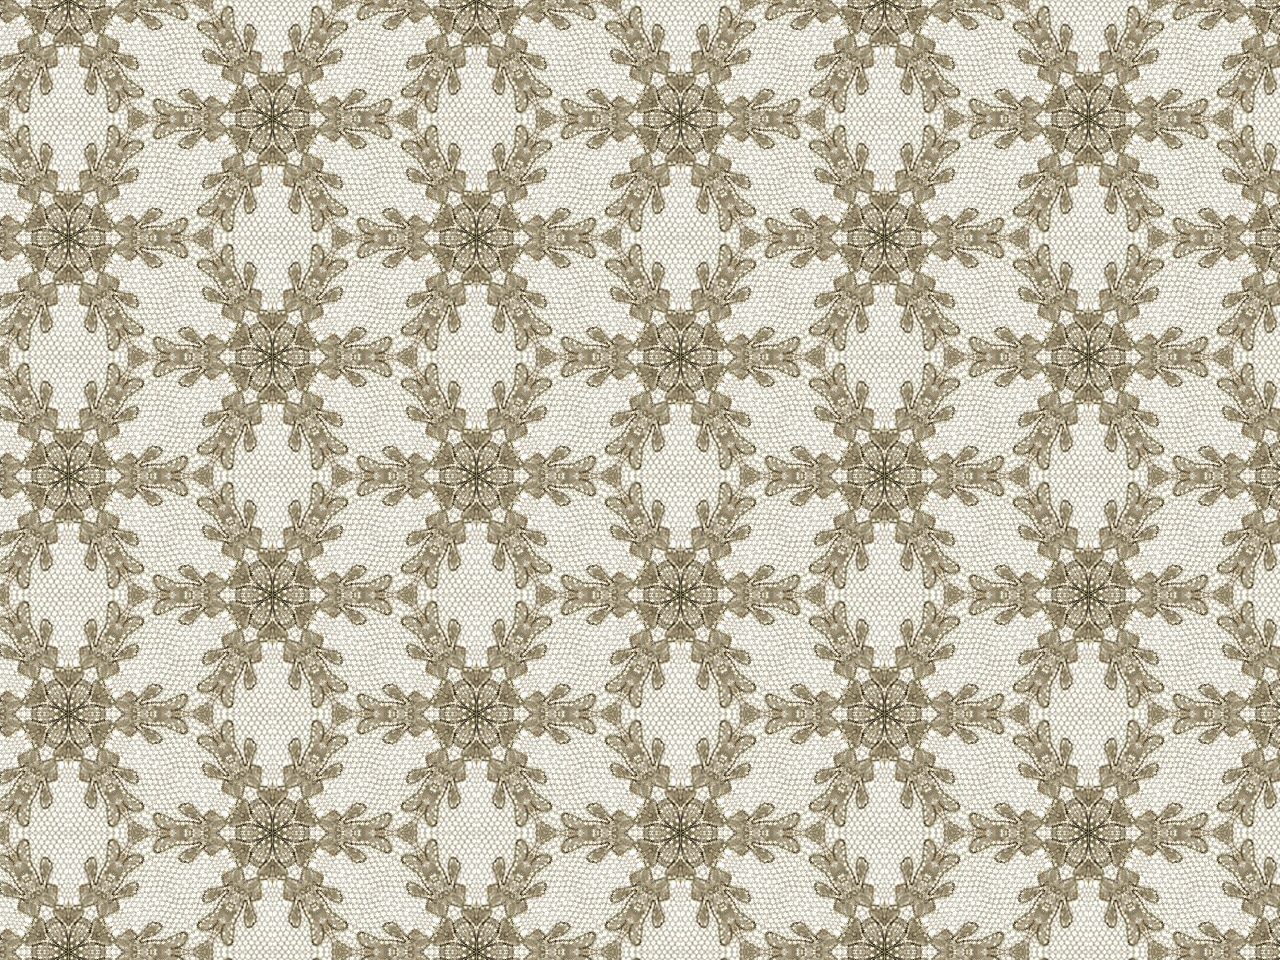 ArtbyJean - Images of Lace: FINE VINTAGE BROWN LACE OVER ...